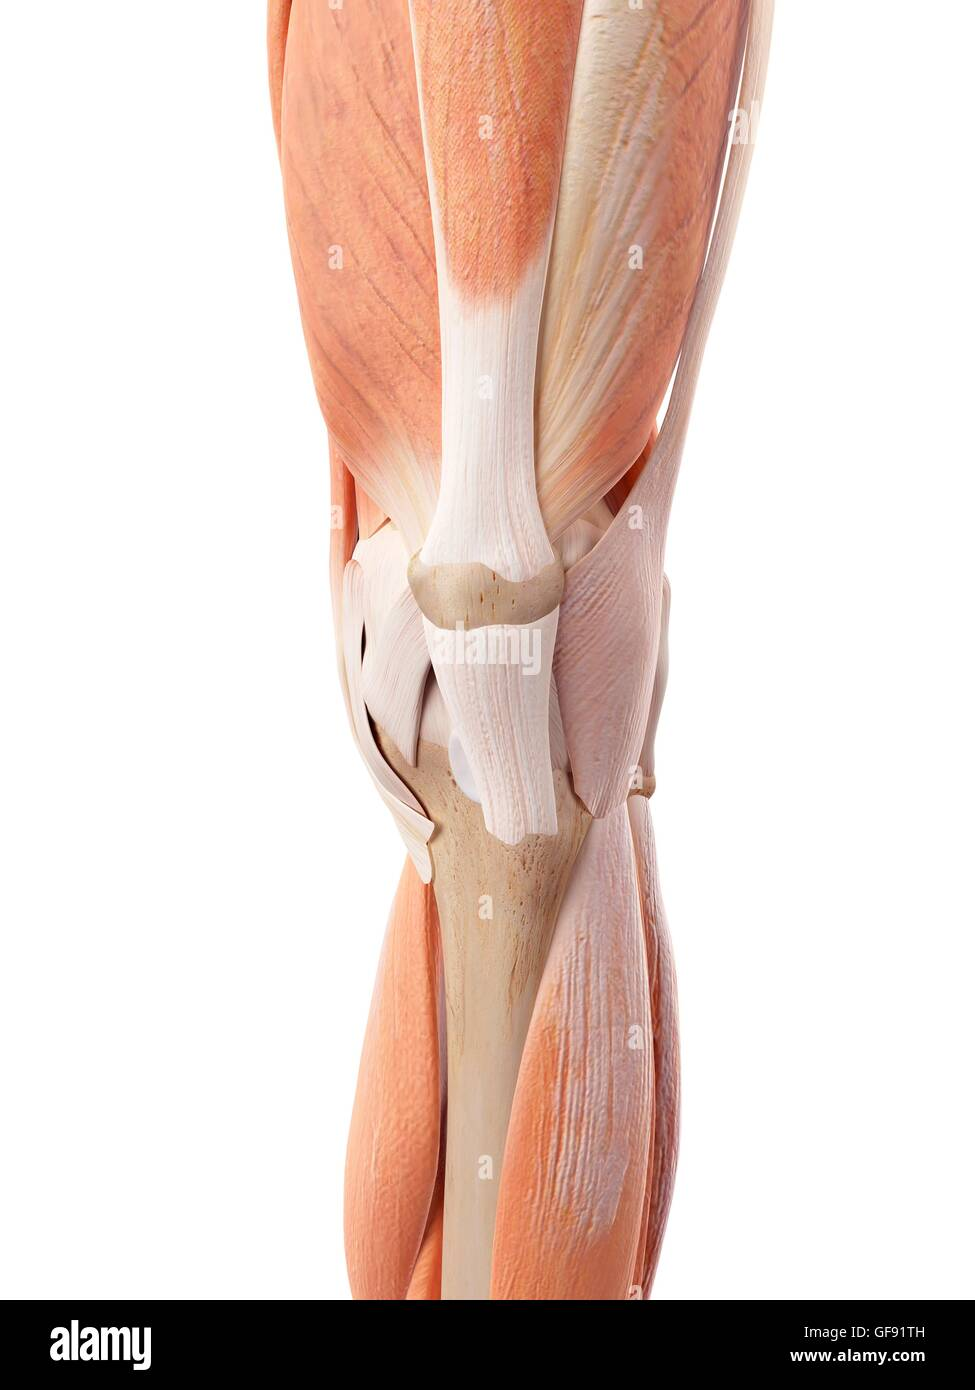 Human Knee Muscles Stock Photos Human Knee Muscles Stock Images